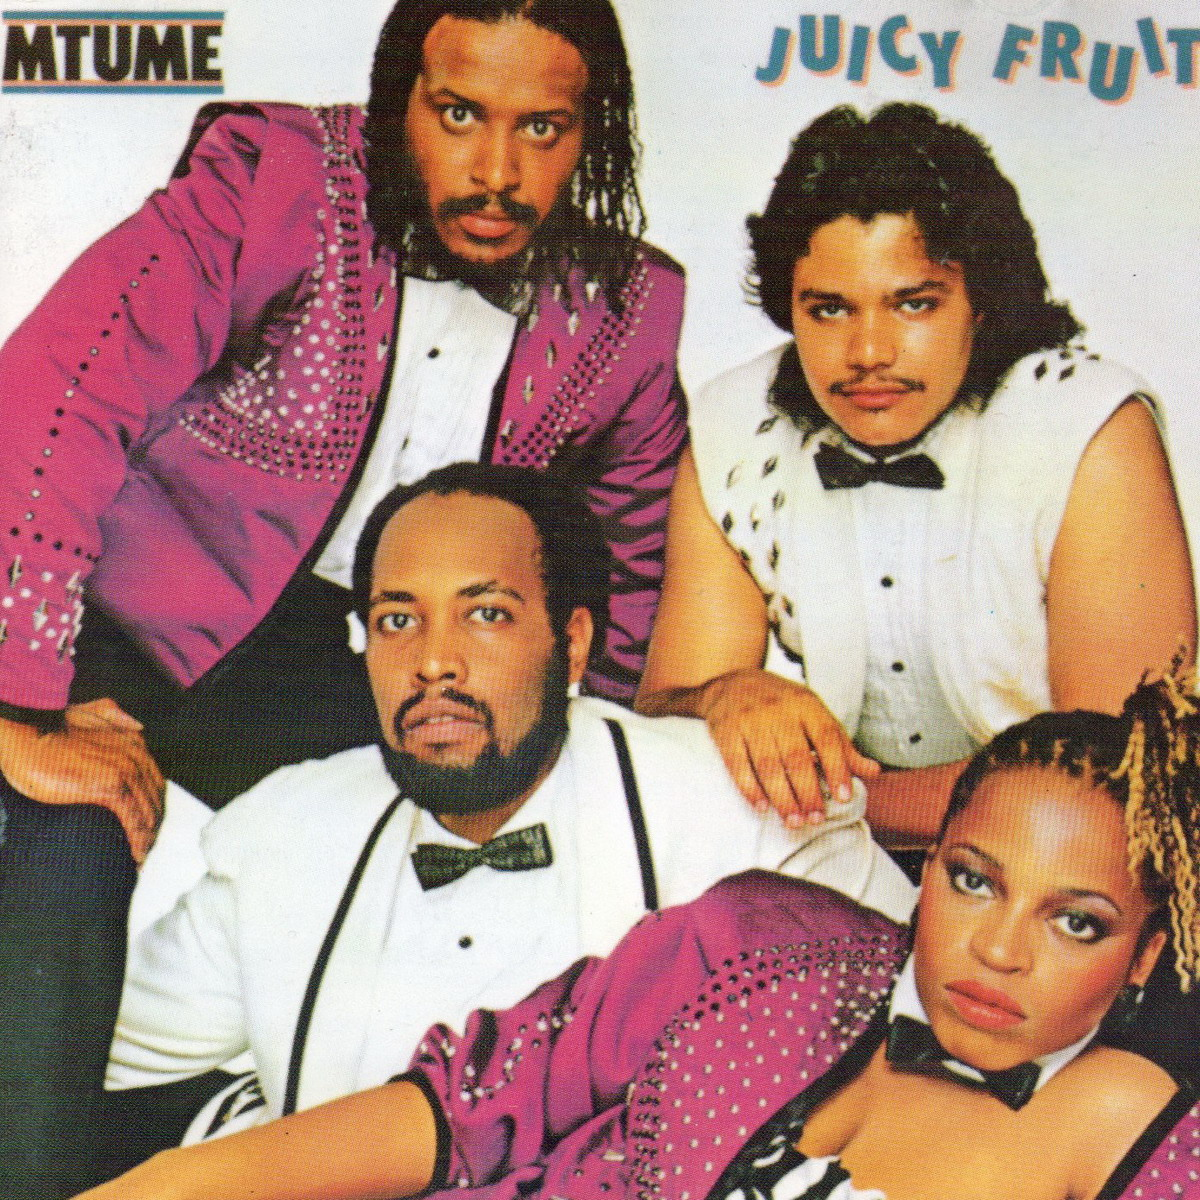 Mtume - Juicy Fruit -1983